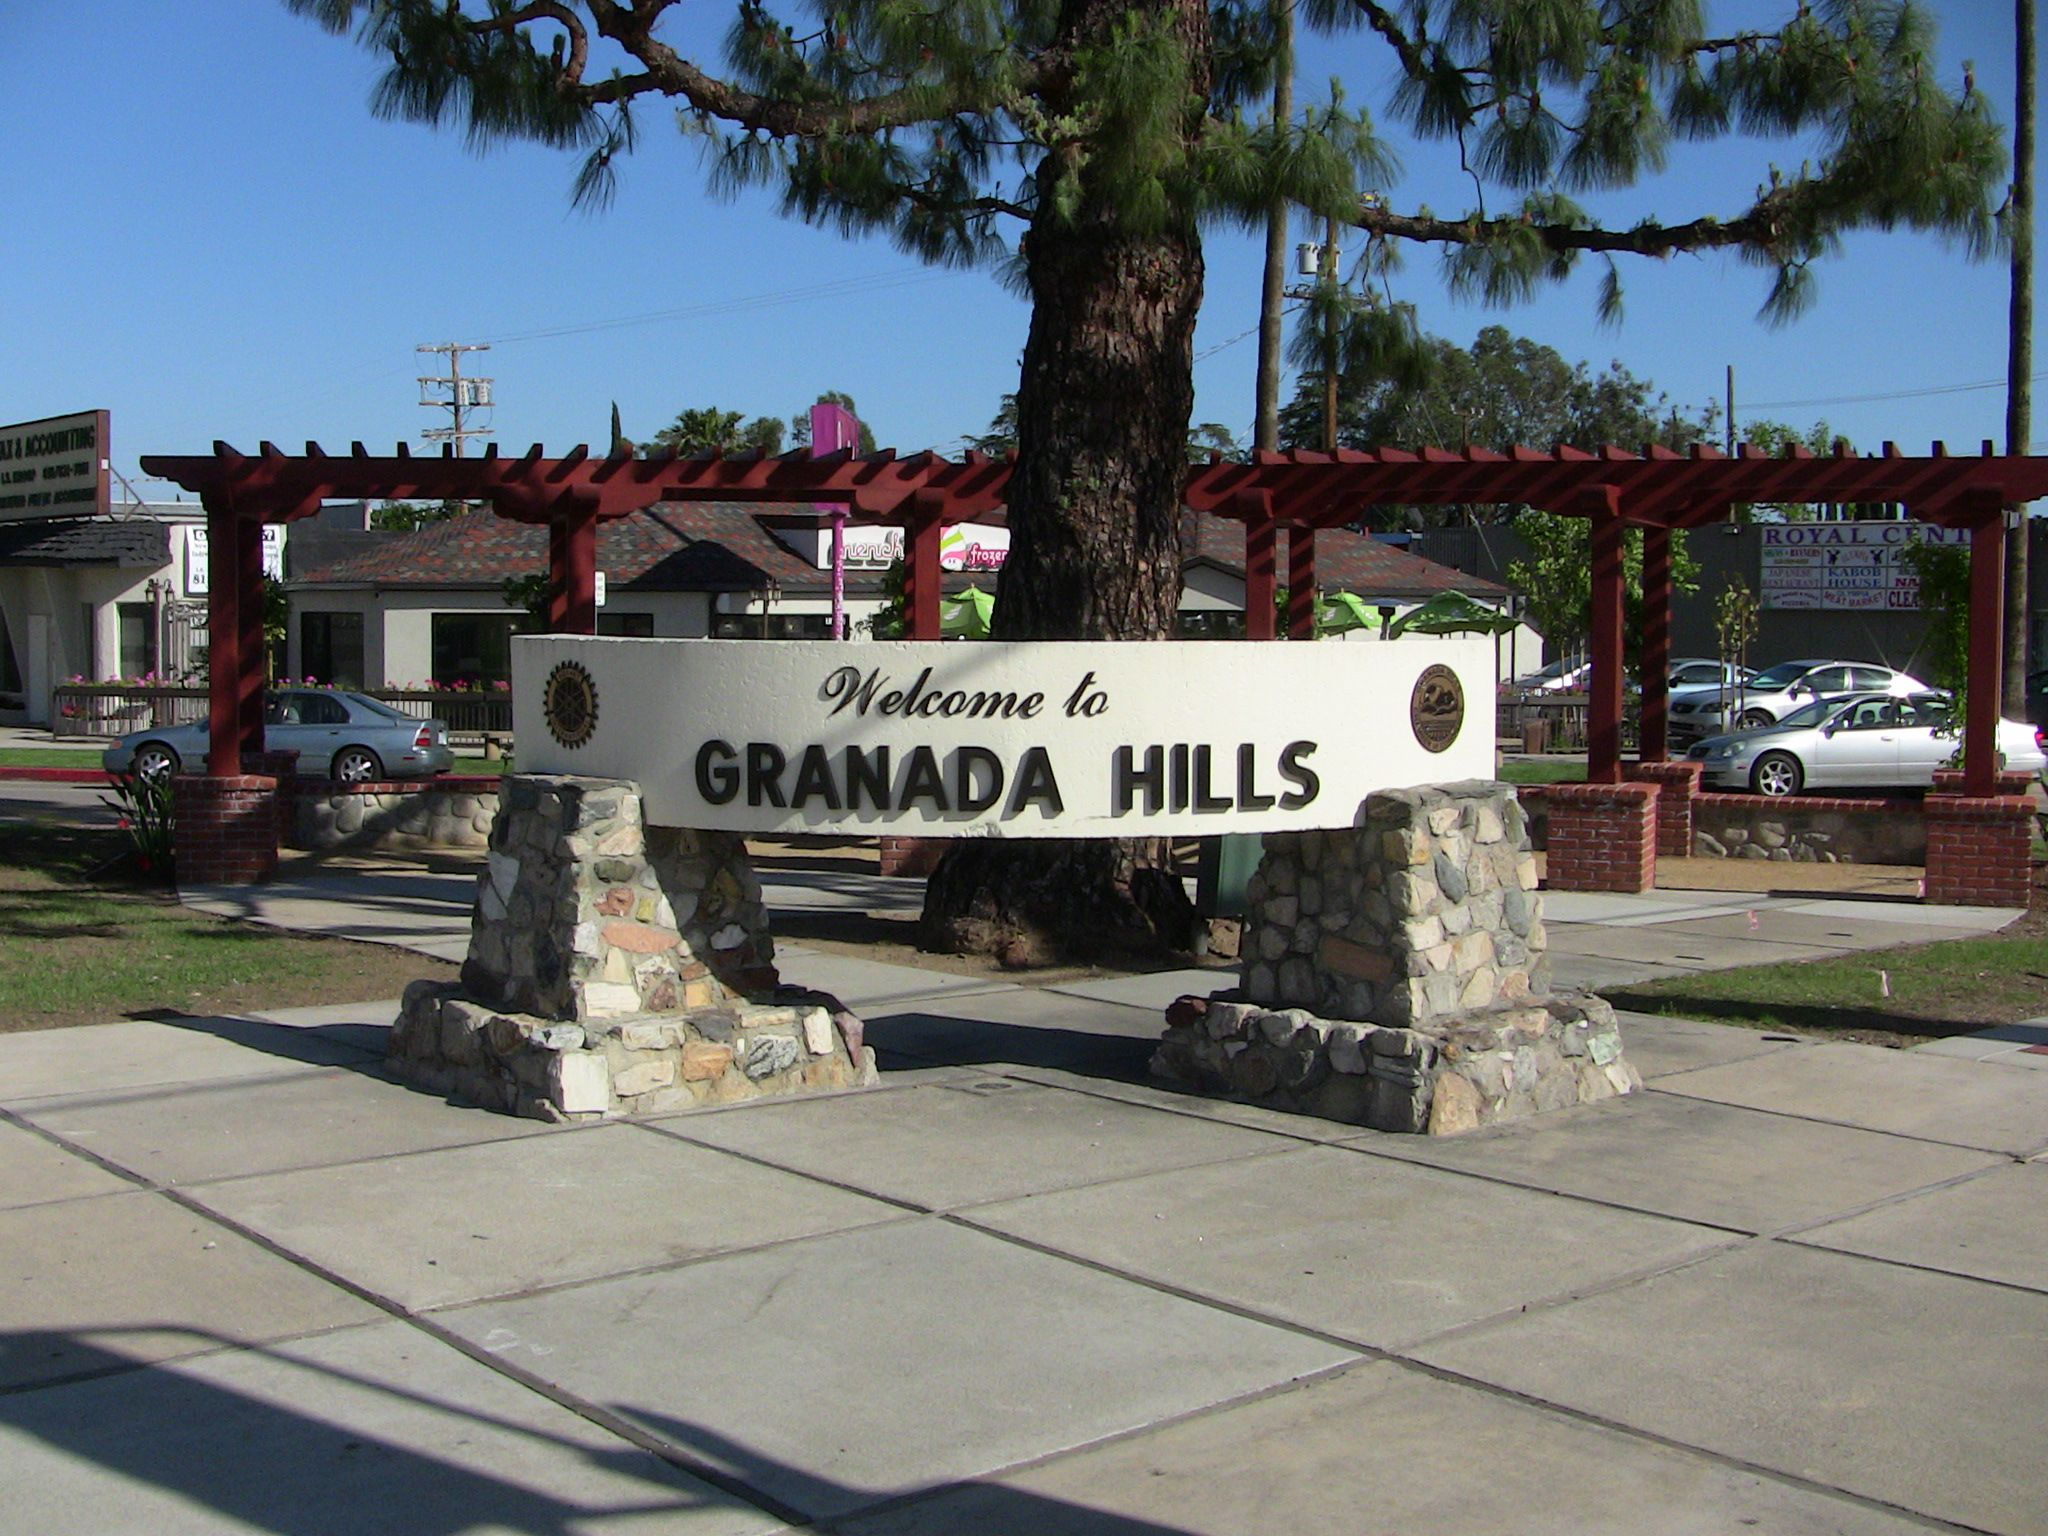 """Granada Hills was founded in 1926 (as """"Granada;"""" the """"Hills"""" was added 15 years later) and started out as a dairy farm and orchard known as the Sunshine Ranch."""